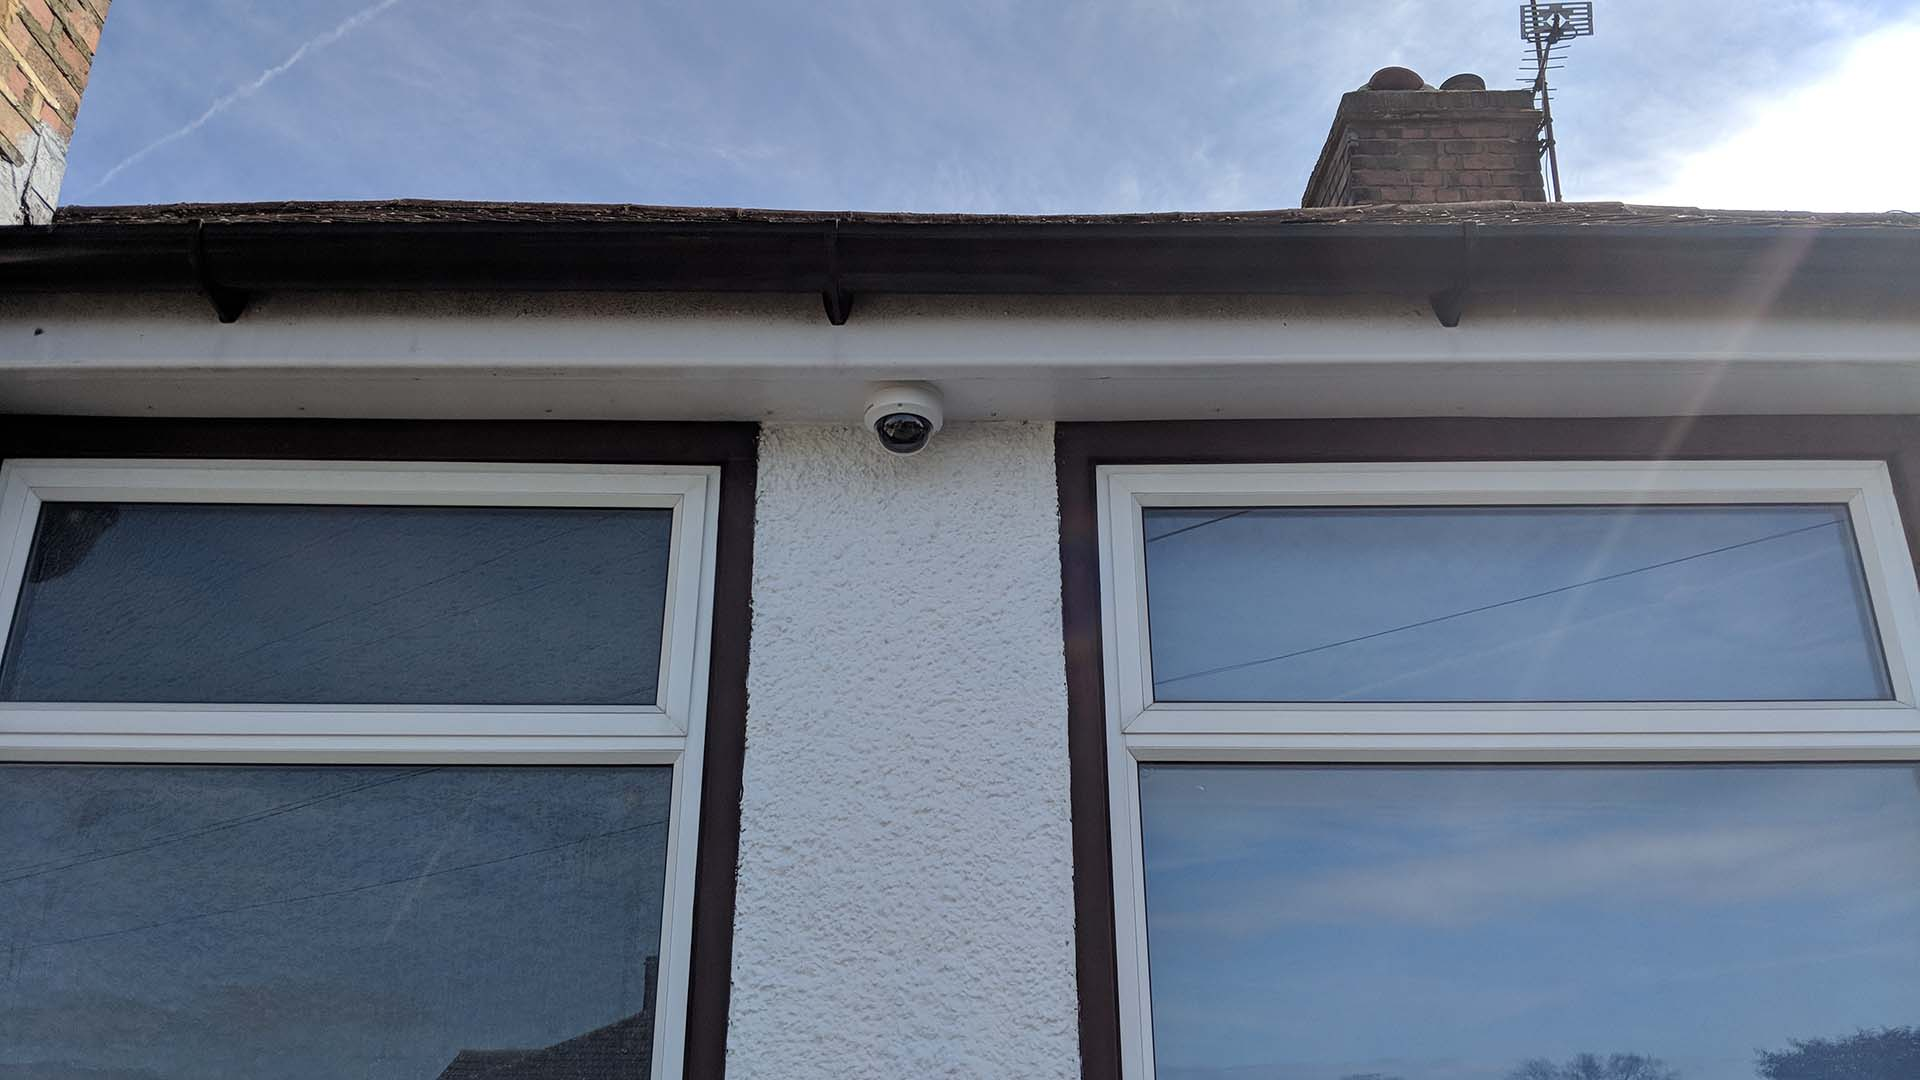 CCTV Installation in Sidcup